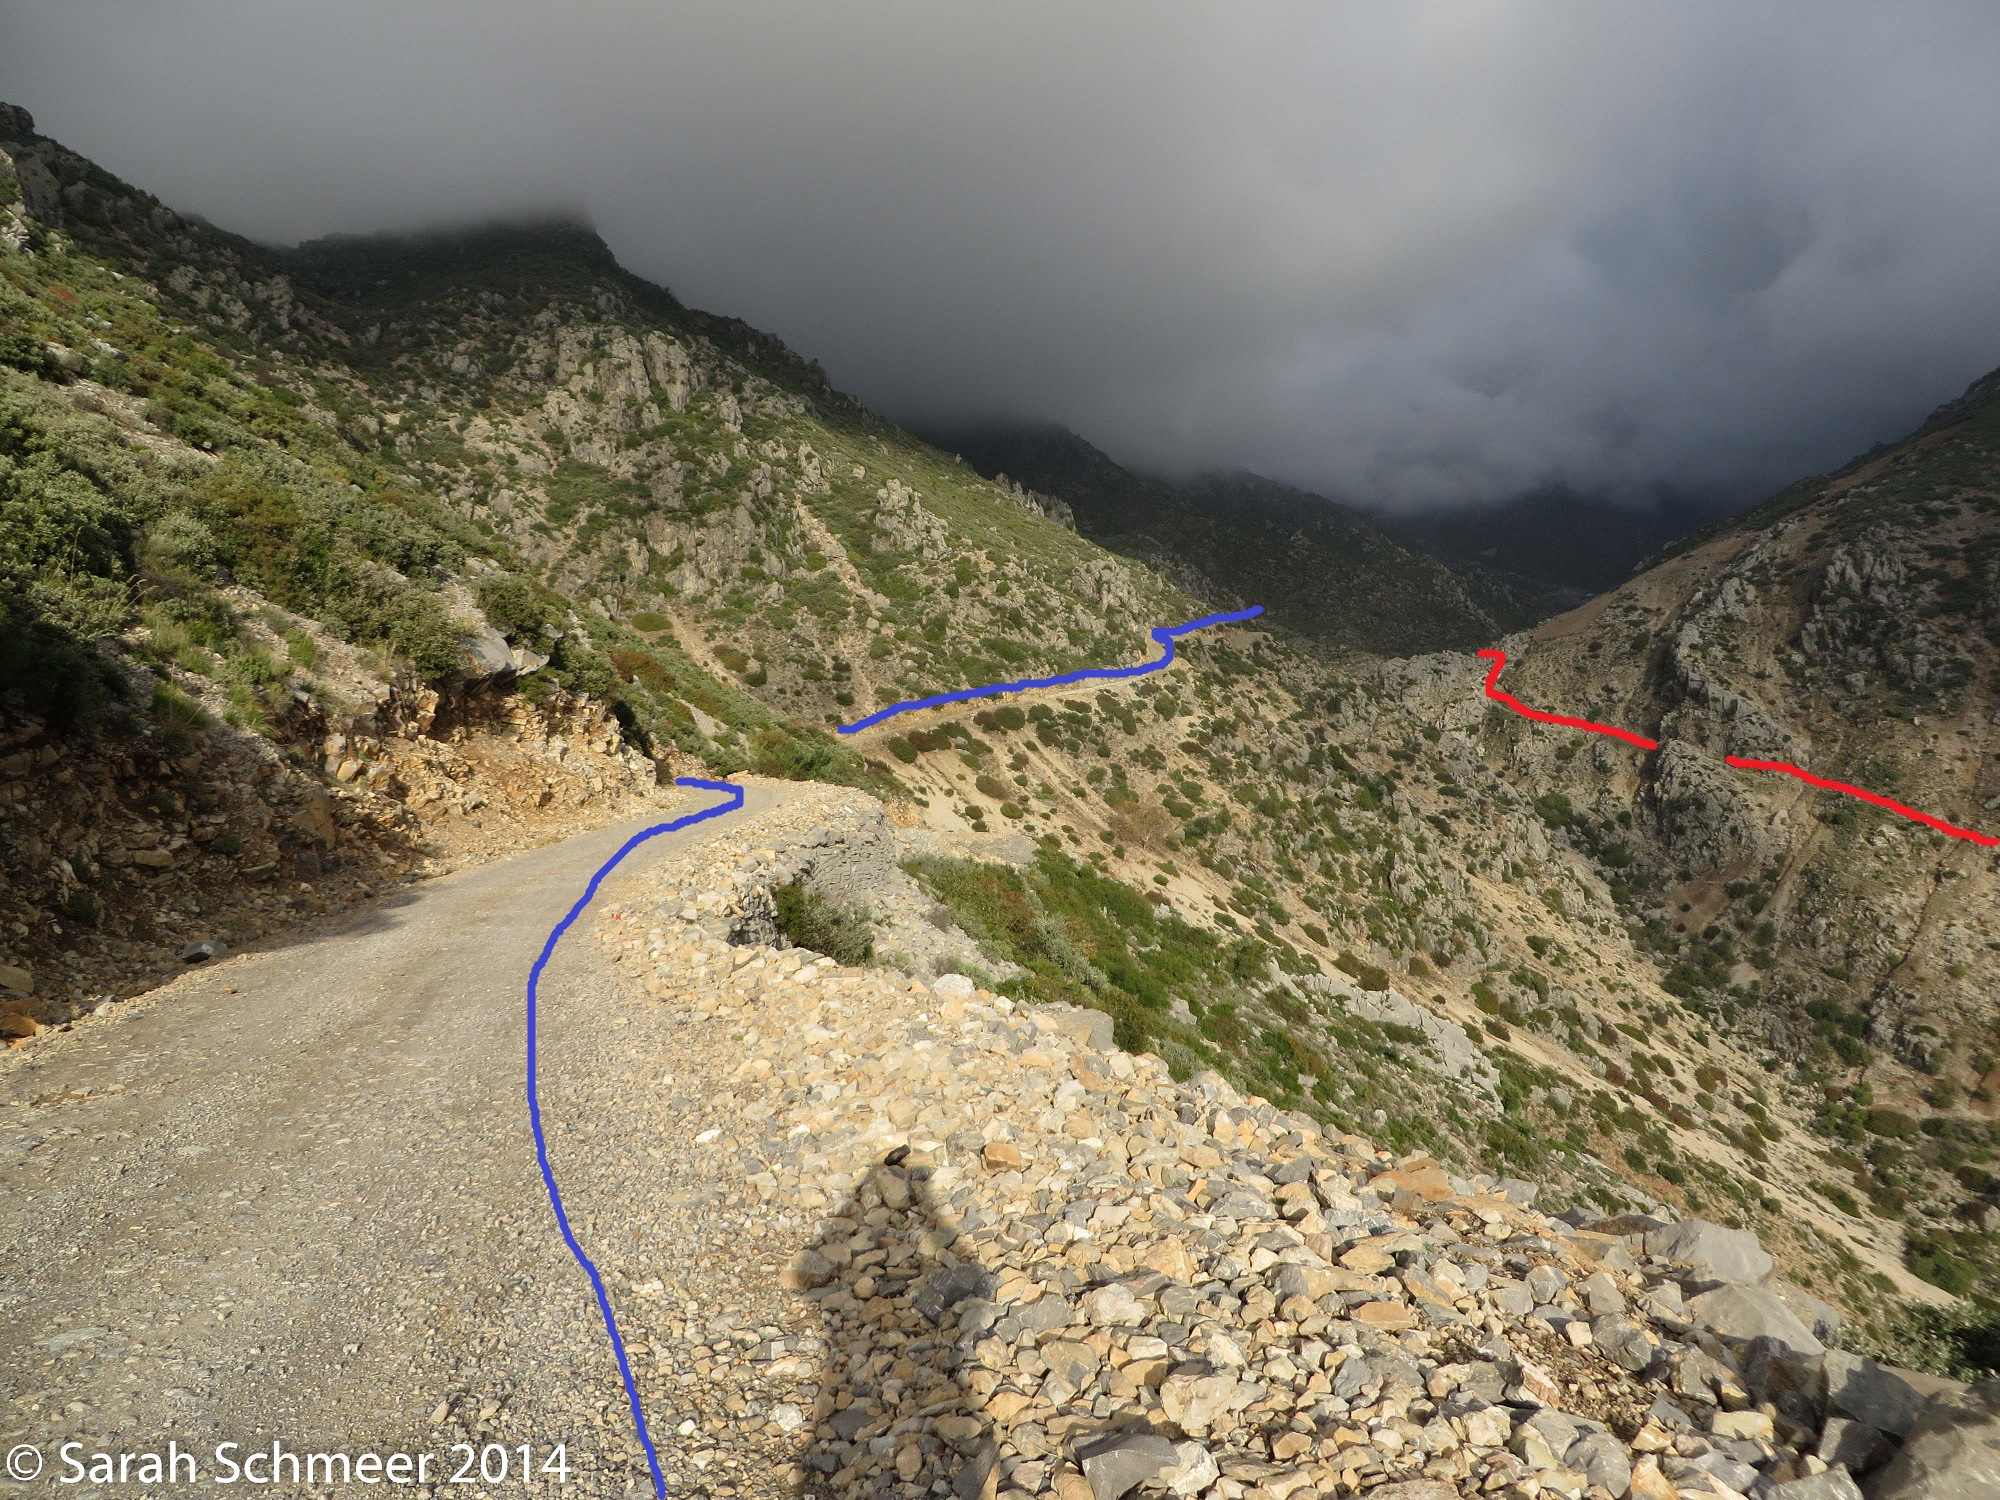 Follow the dirt road along the hillside. The red line shows the steepcut heading up the valley to meet the normal route.